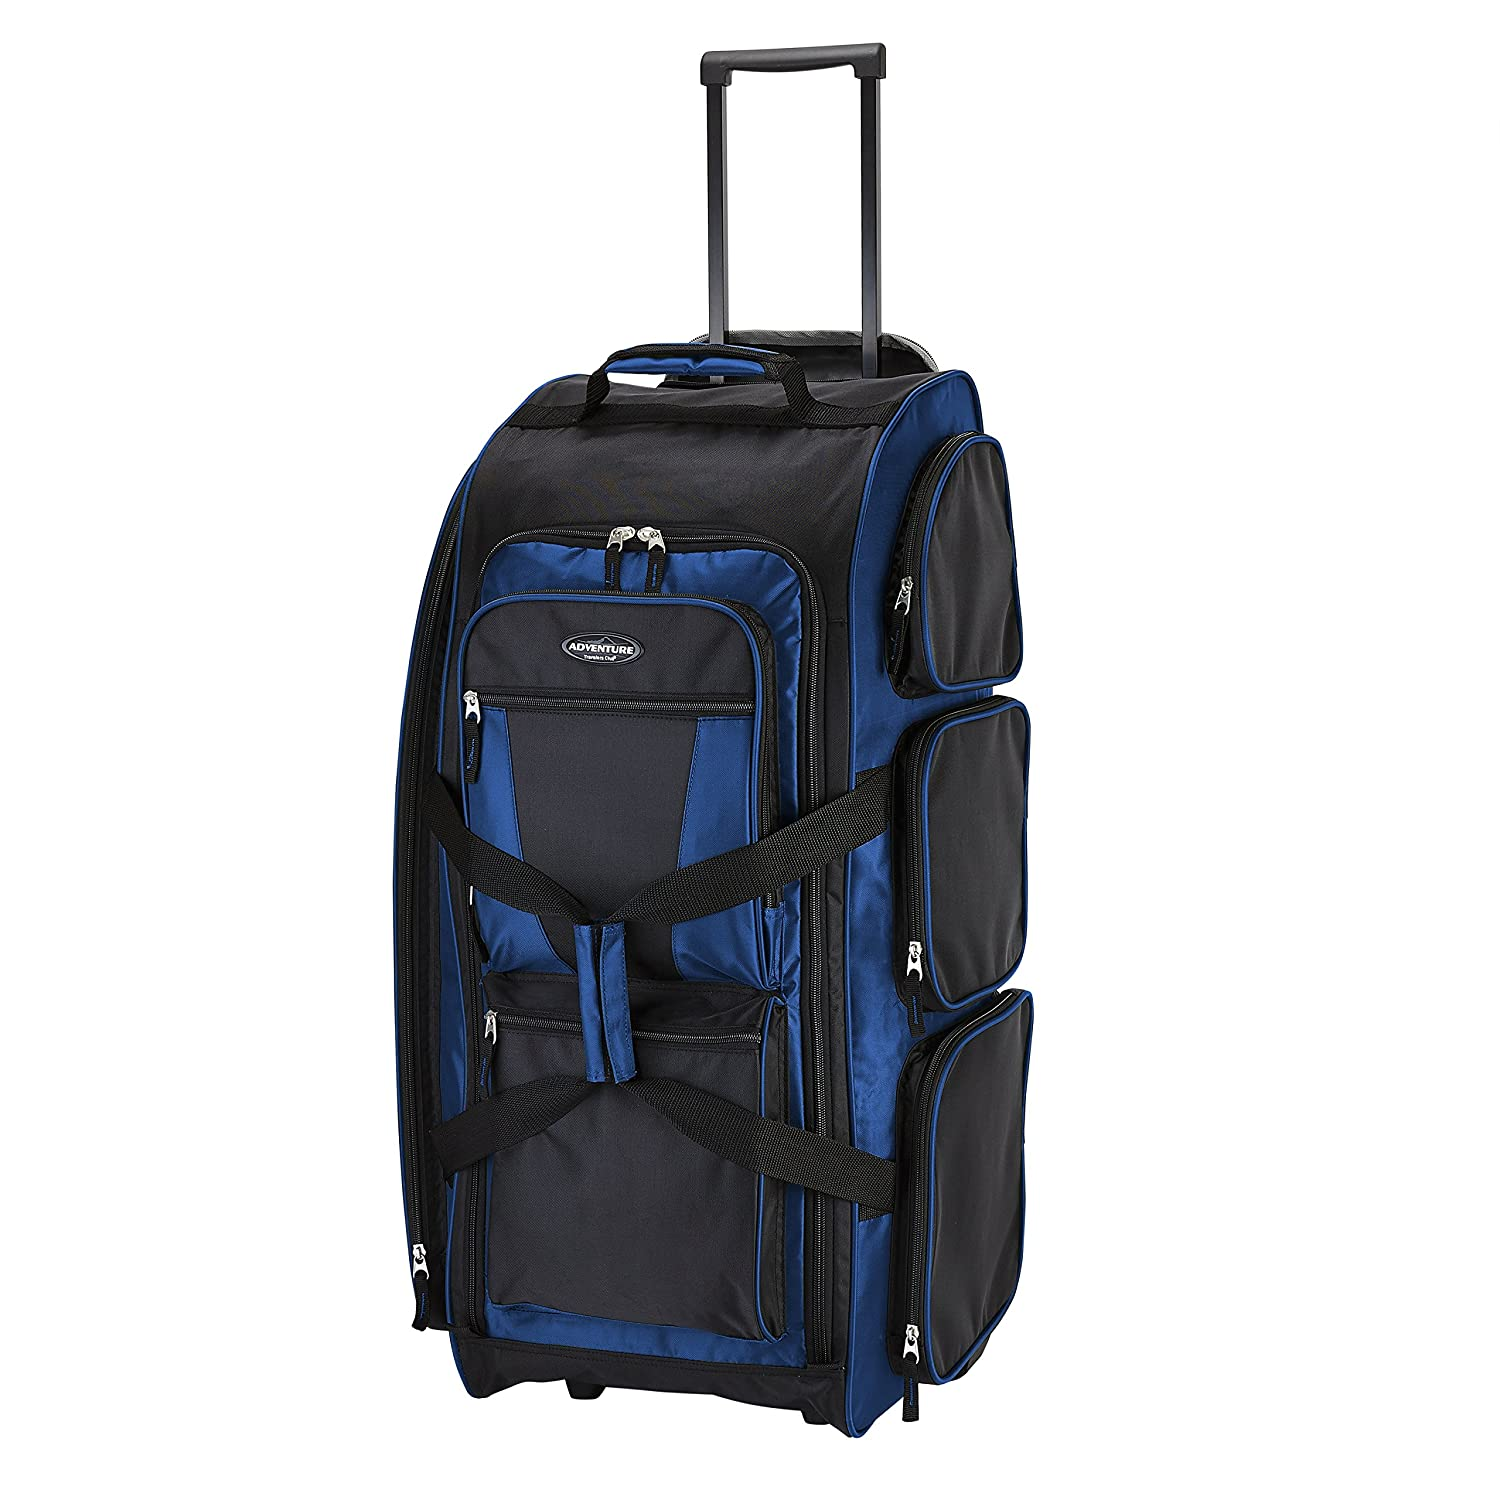 Travelers Club 30'' Rolling Duffel Blue One Size Xpedition by Travelers Club 85130-420